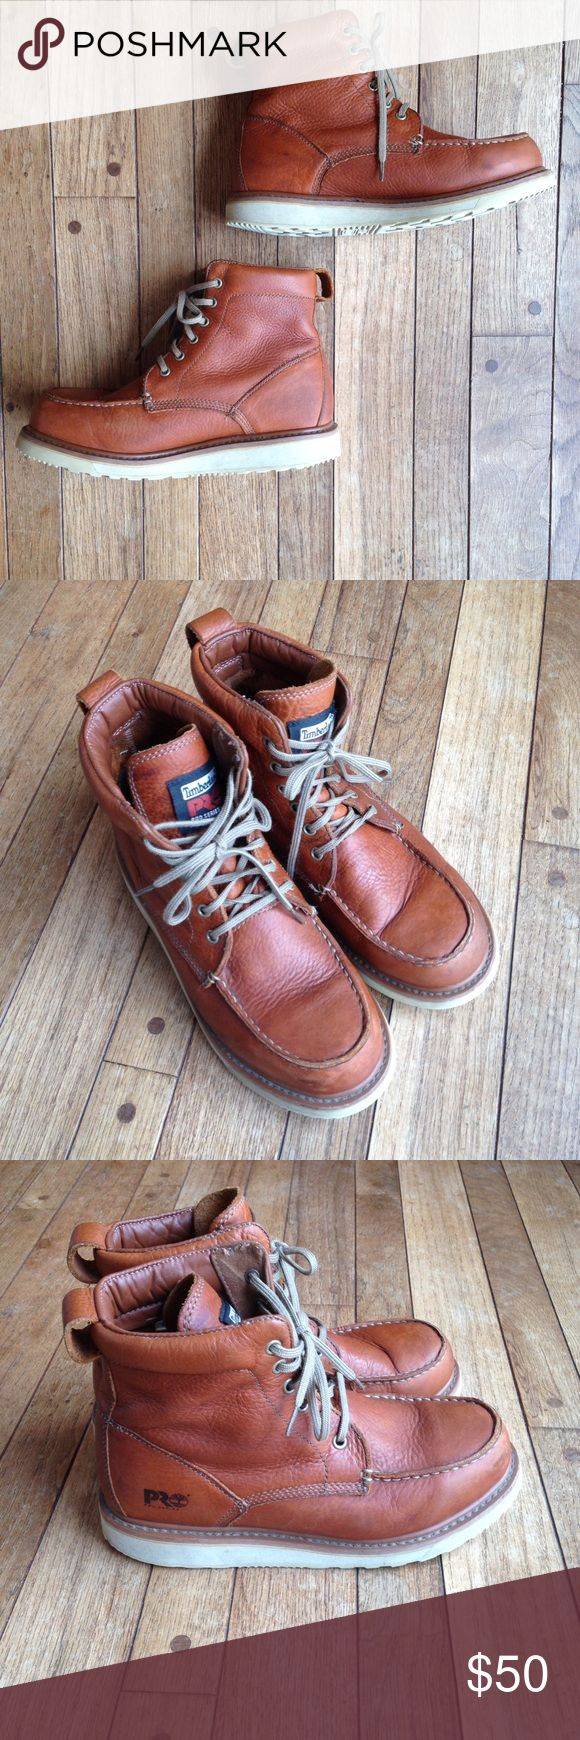 """Timberland Pro Series 6"""" Leather soft-toed boots Rust brown colored. Full grain leather.  Lace up. VGUC. Soles are in EUC!  Leather has some scuffs and small scratches, but remains supple and soft. Insoles are in great condition! Timberland Shoes Boots"""